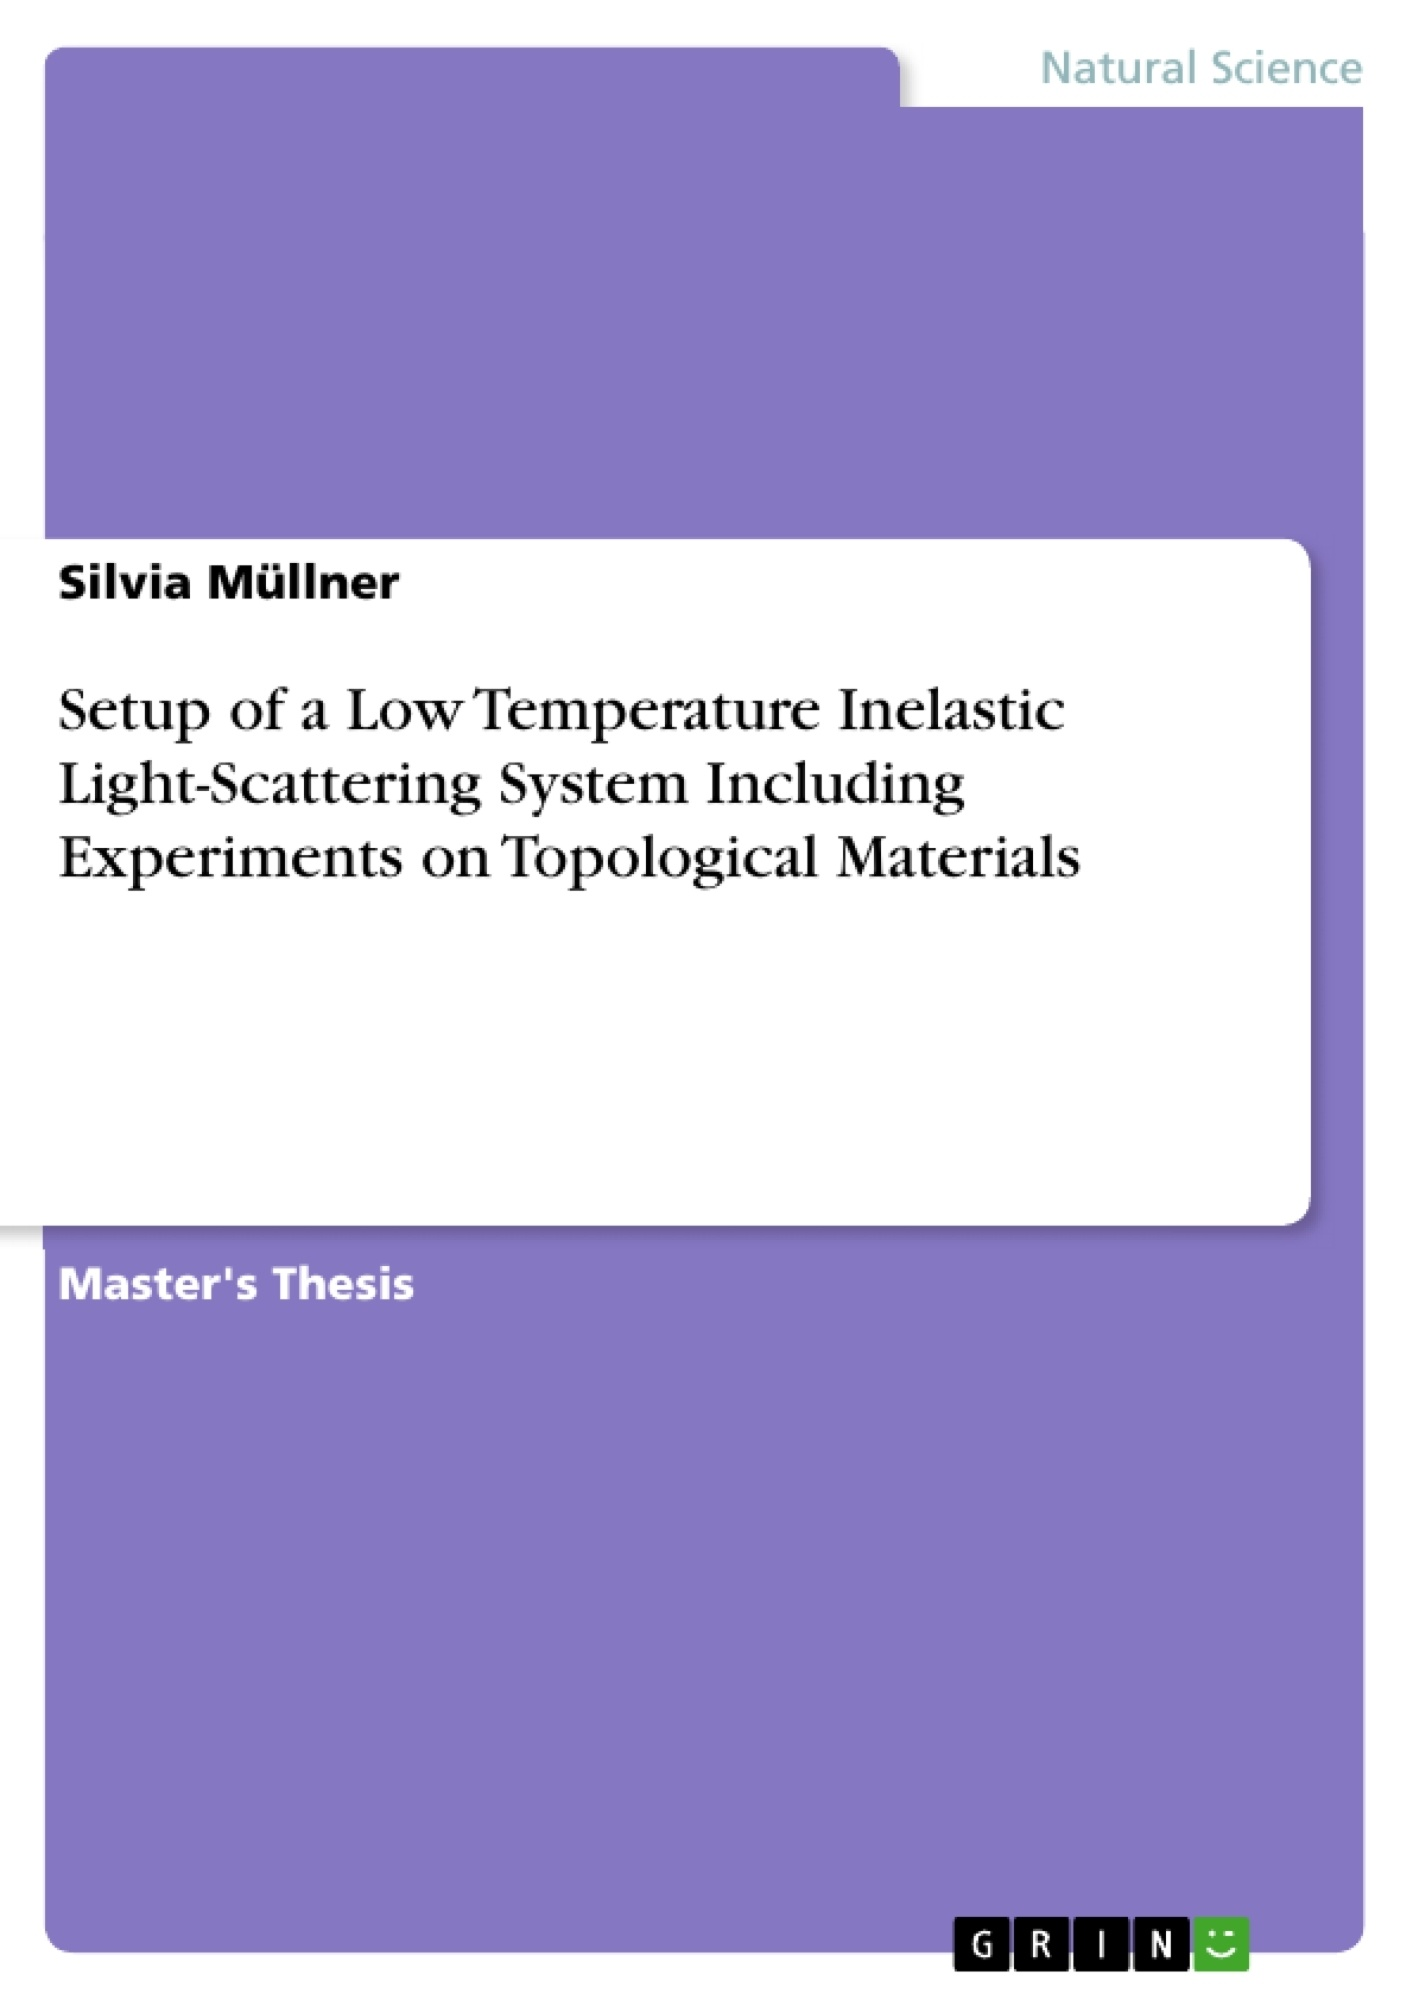 Title: Setup of a Low Temperature Inelastic Light-Scattering System Including Experiments on Topological Materials